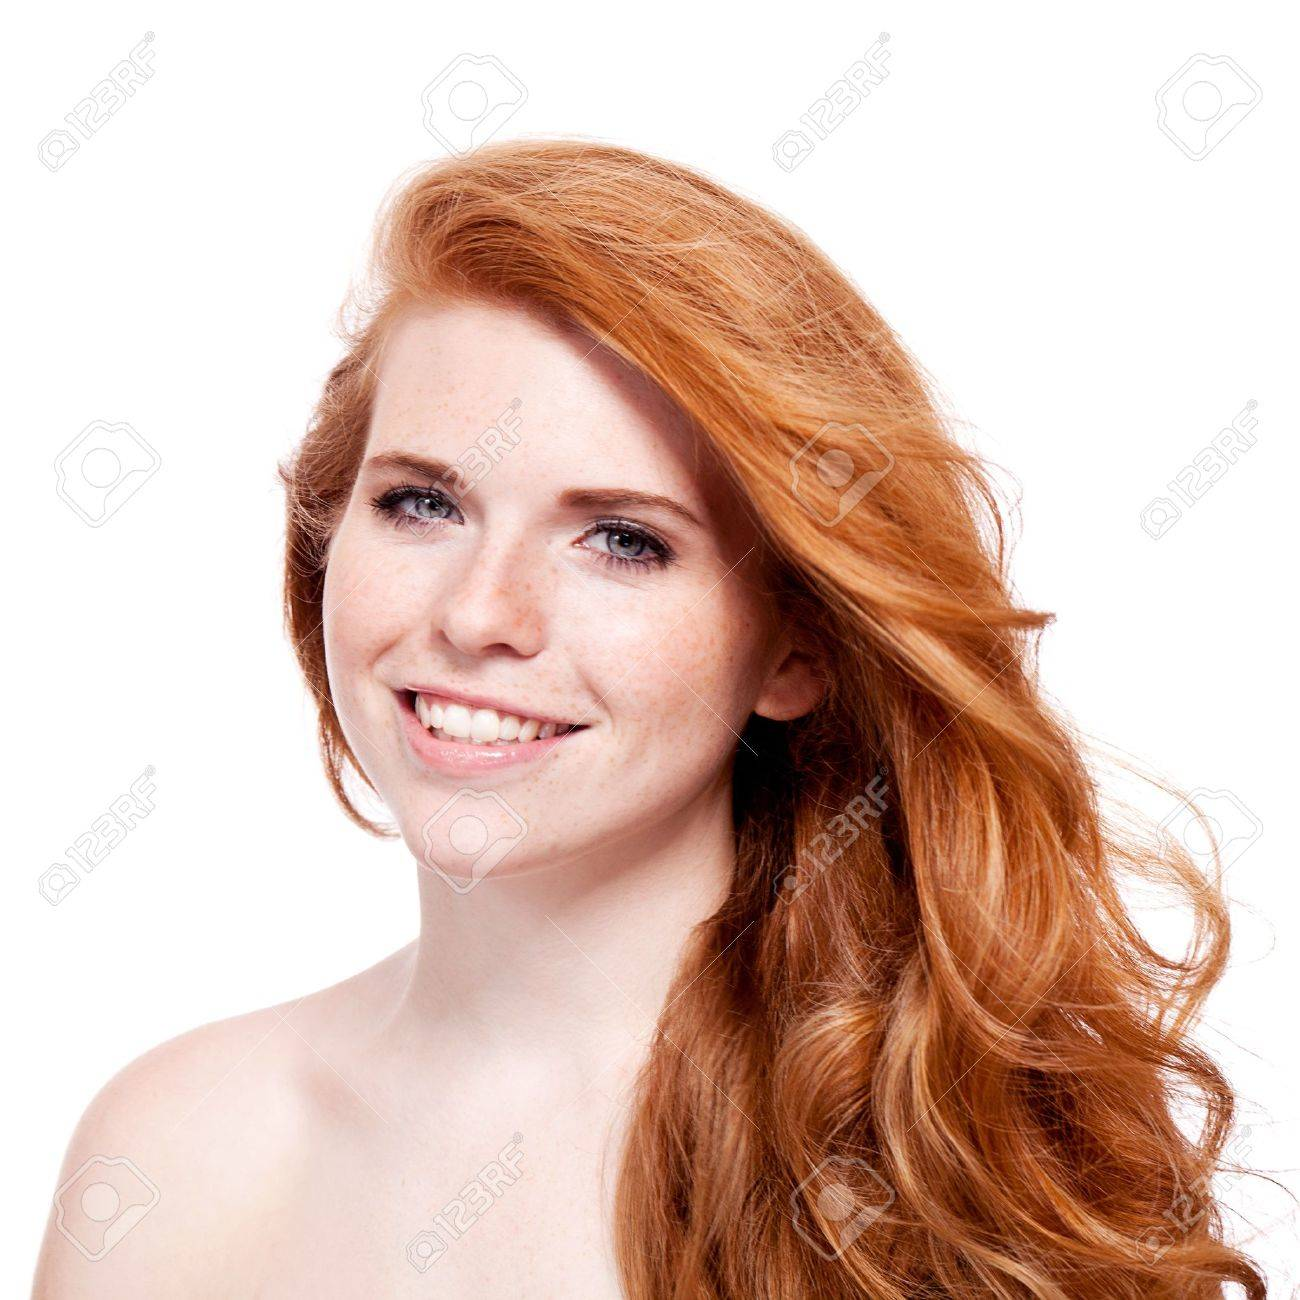 beautiful young redhead woman with freckles portrait isolated on white - 21284158